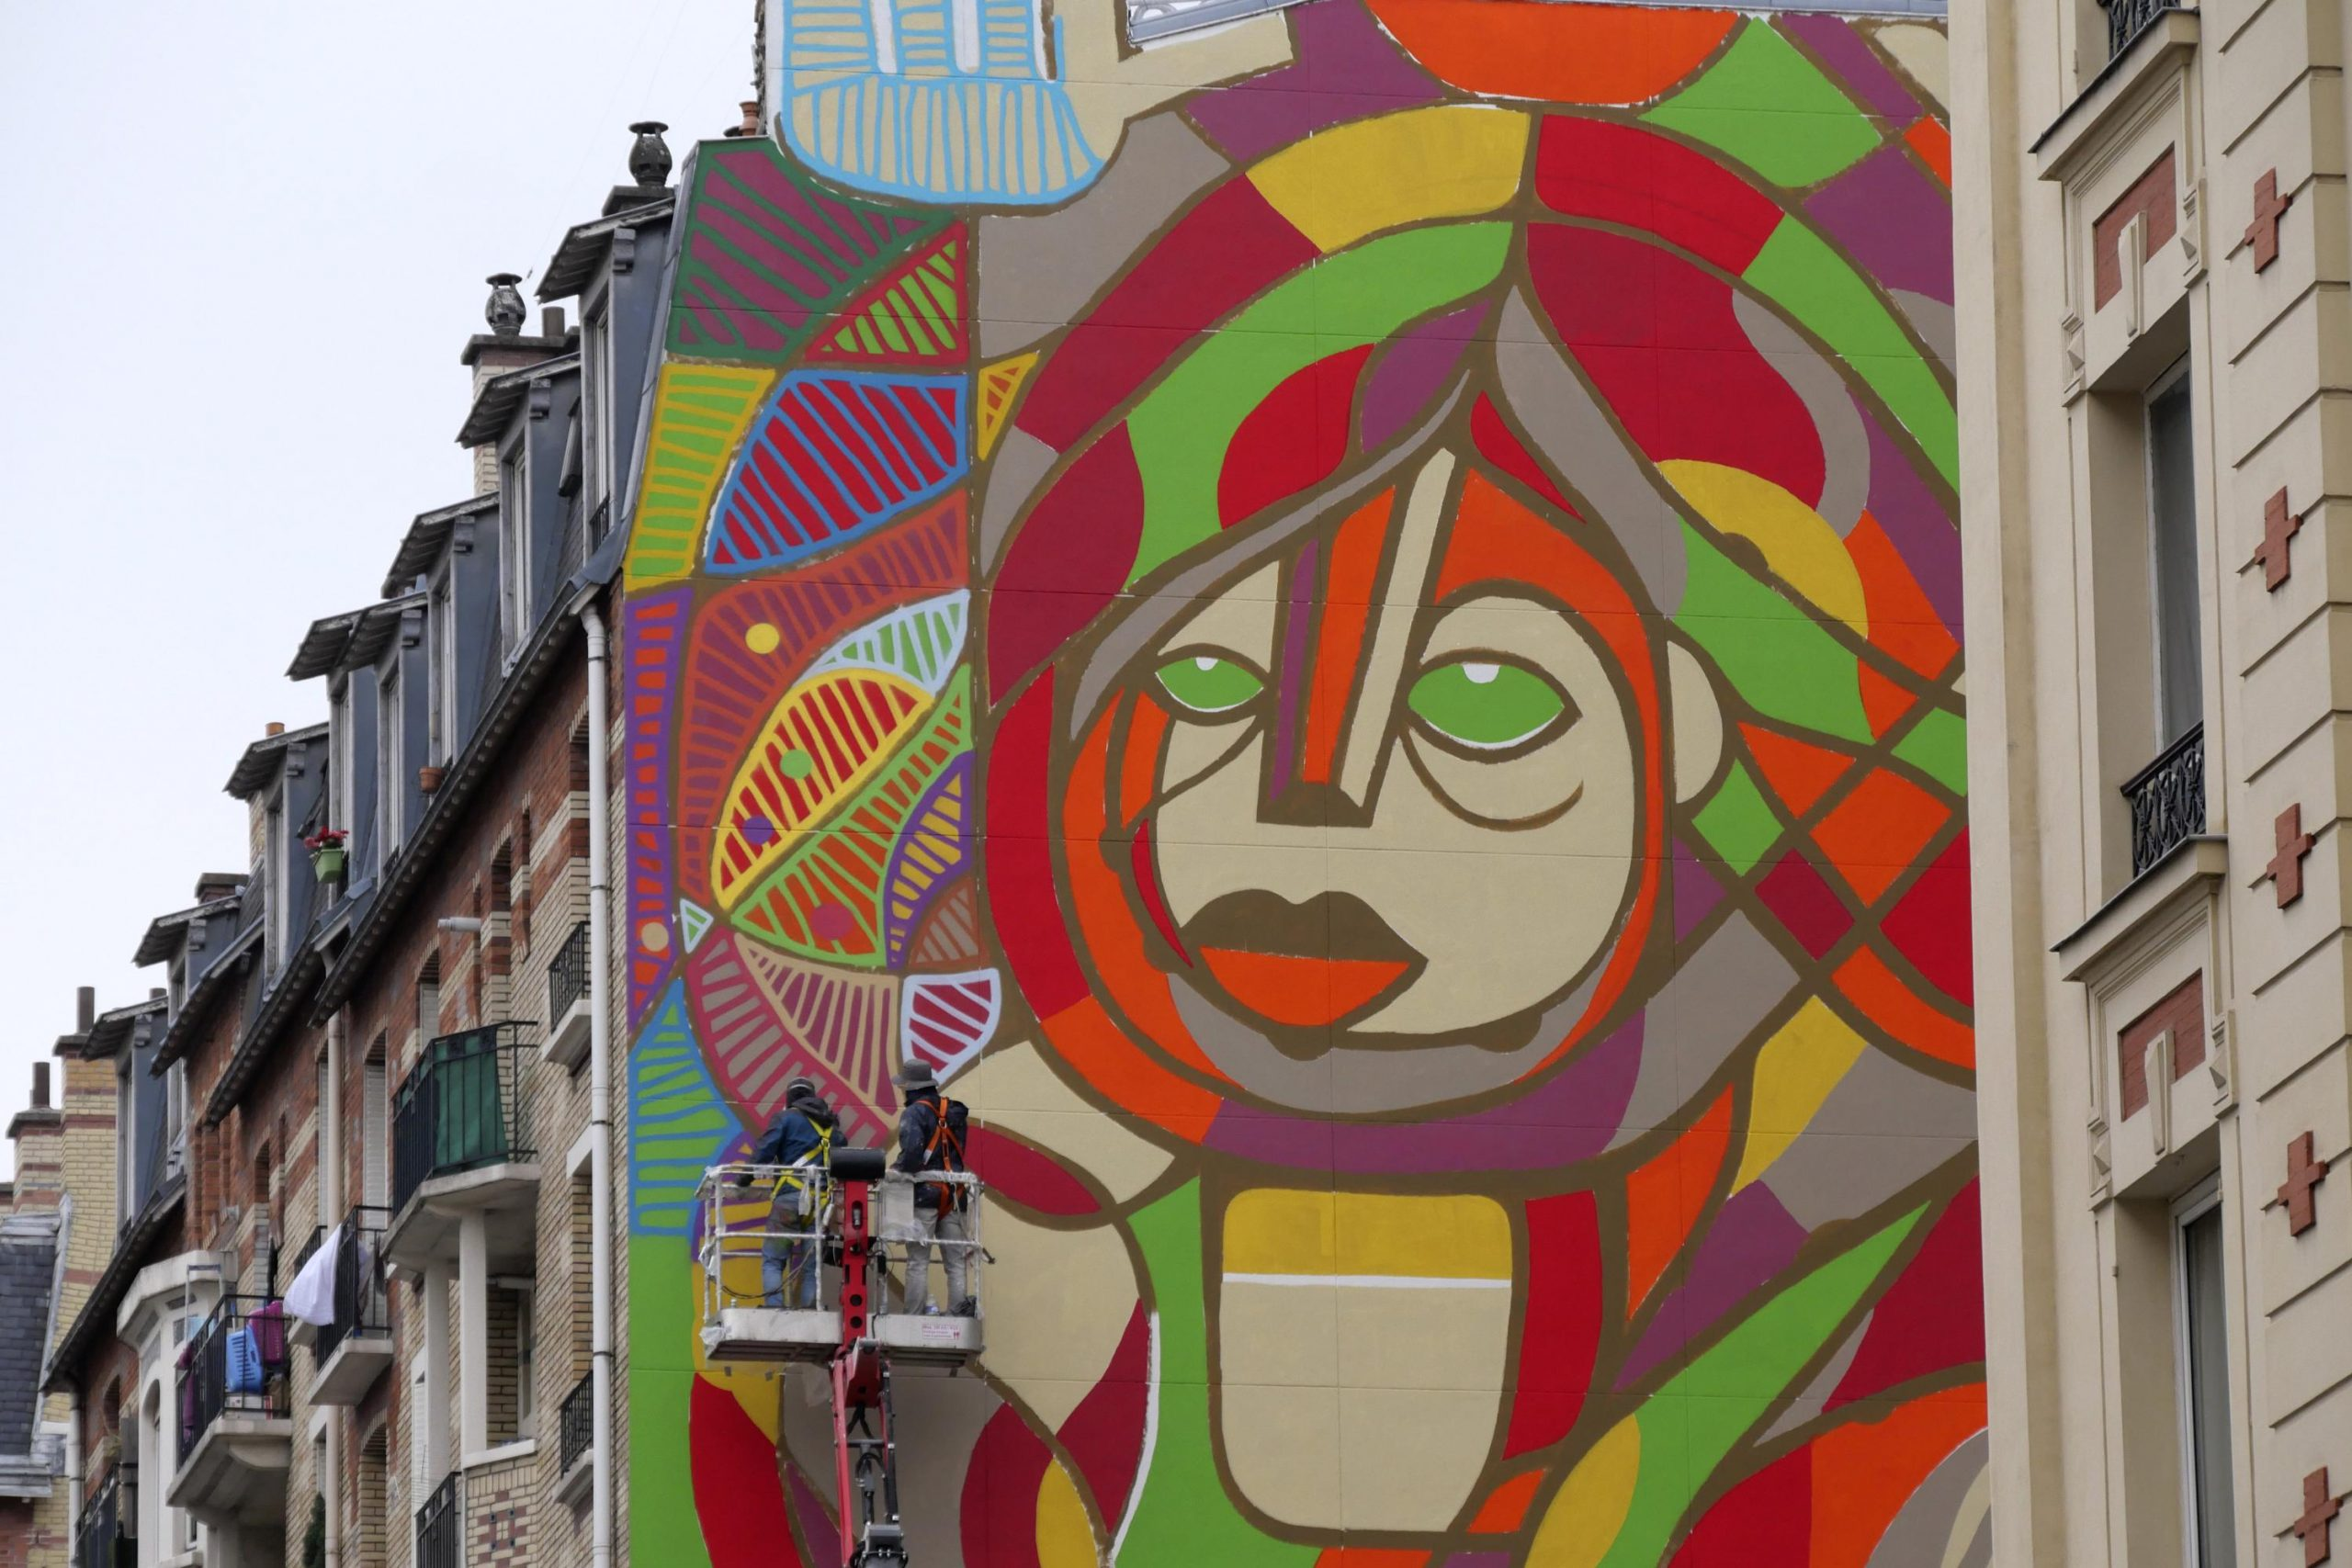 French street artists painting a massive mural in the French capital 3